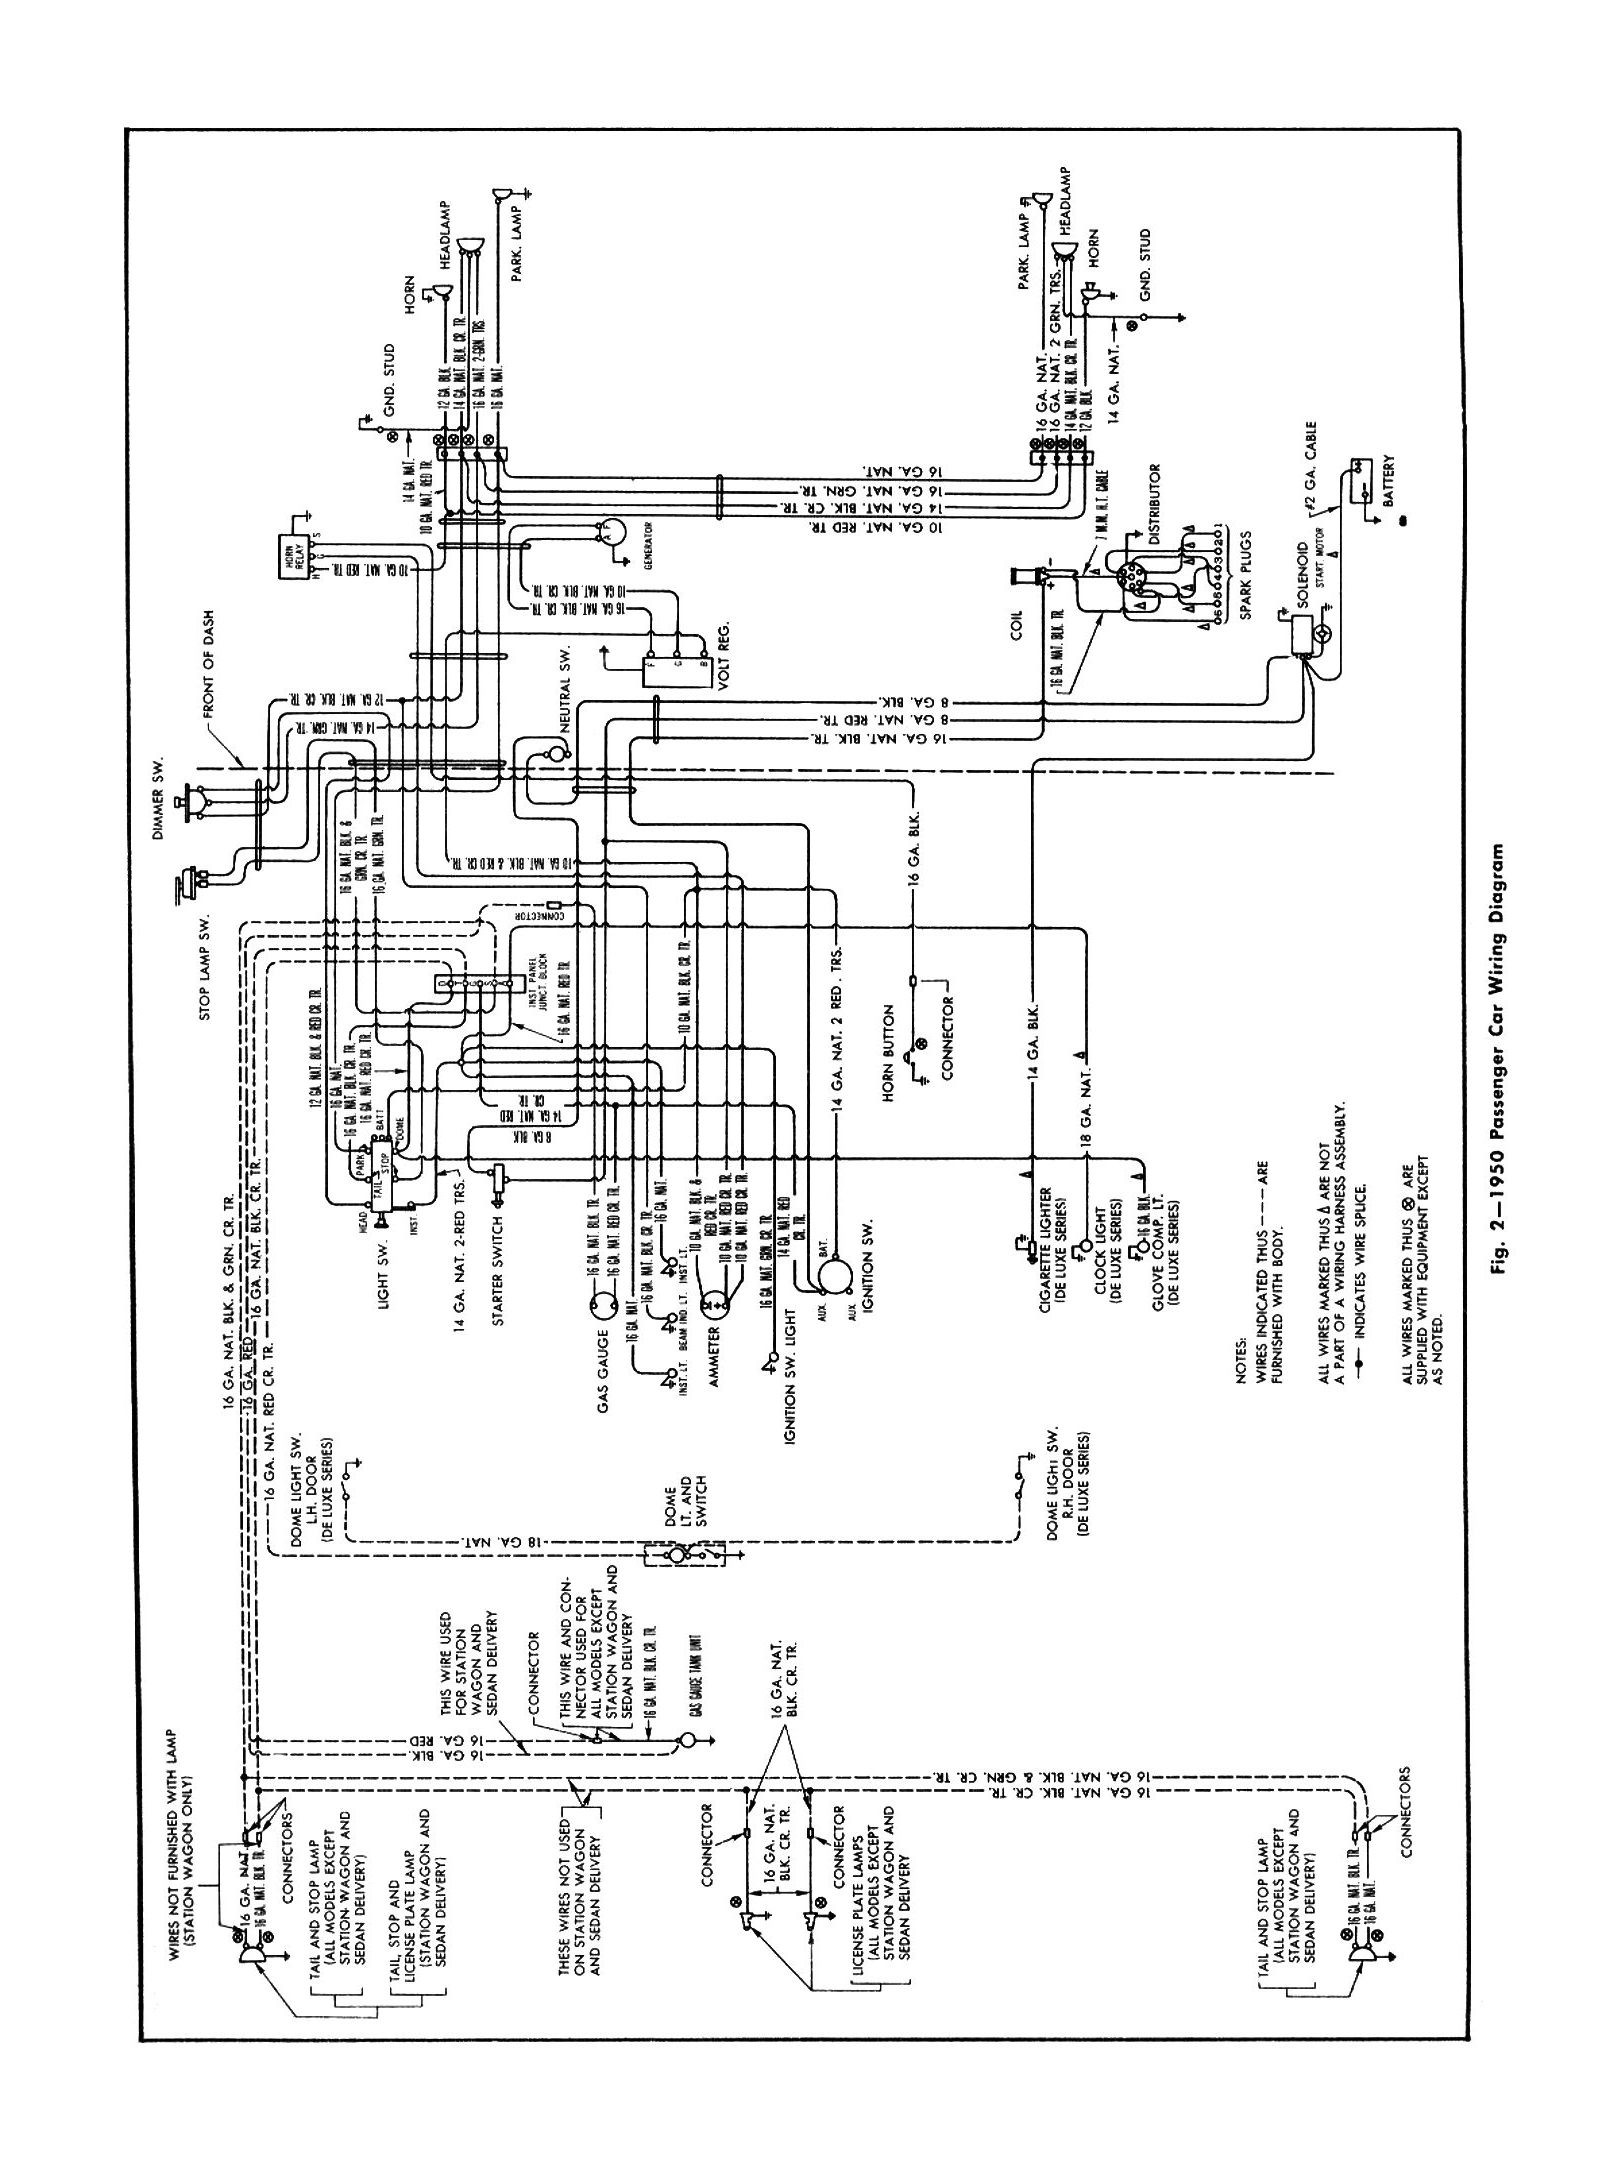 chevy wiring diagrams rh chevy oldcarmanualproject com chevy wiring diagrams free chevy wiring diagrams site